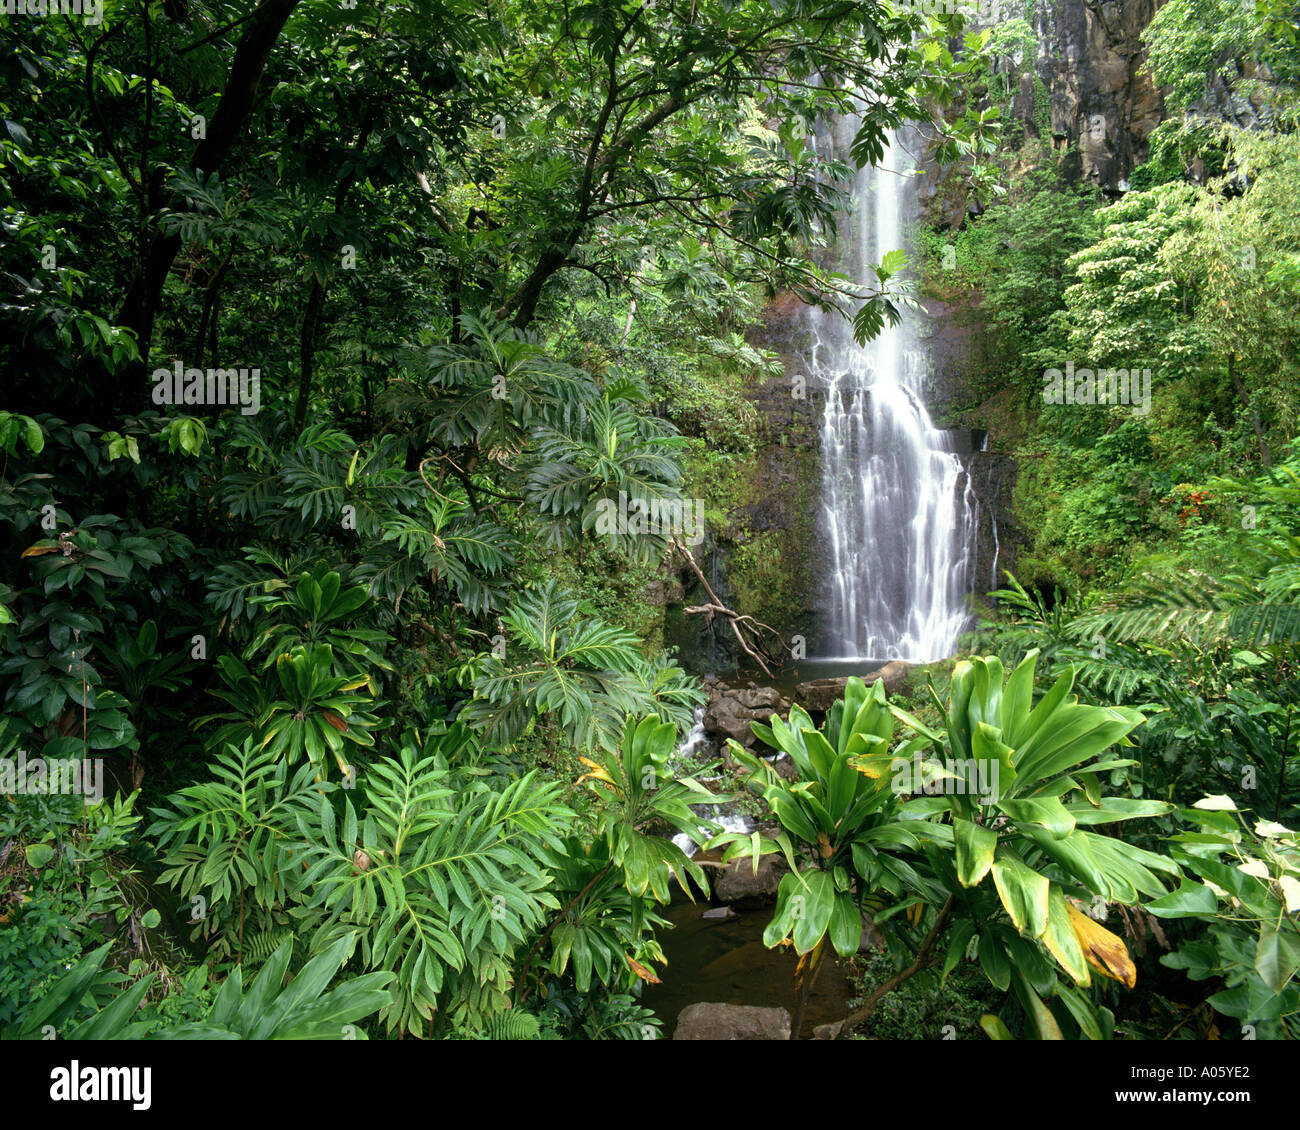 USA - HAWAII: Wailua Falls along the road to Hana on Maui Stock Photo